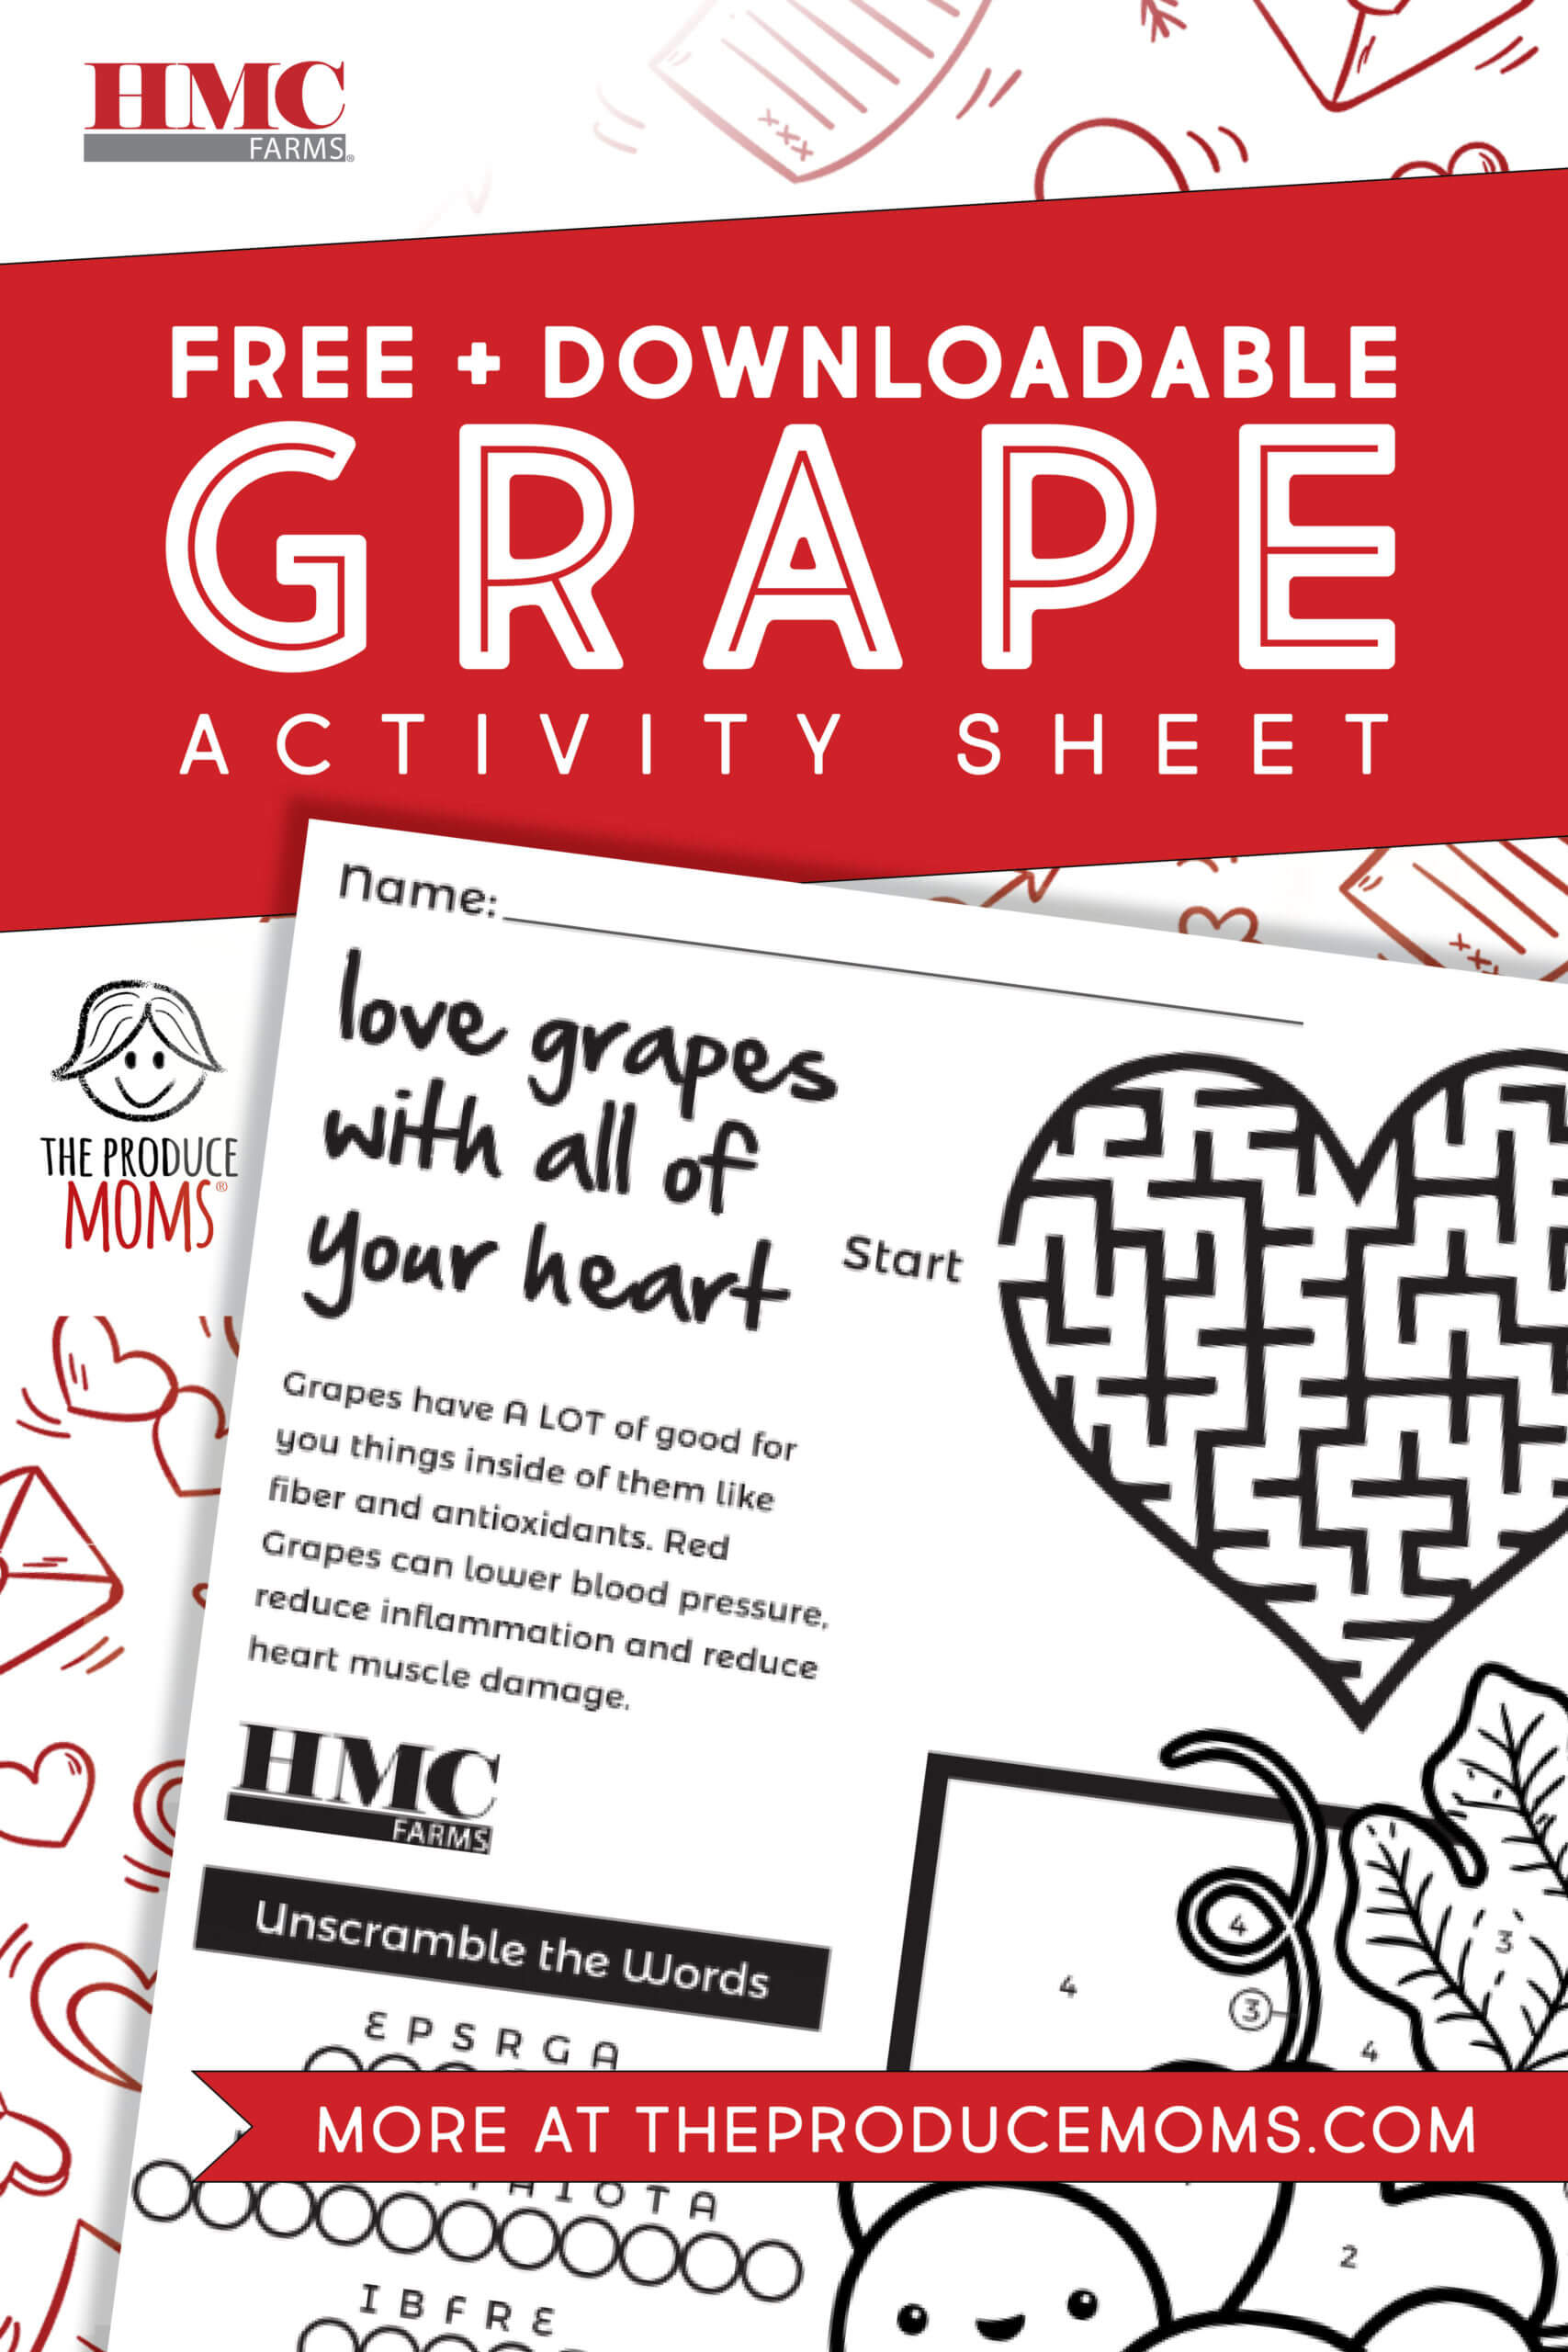 Love Grapes with All Your Heart: Activity Sheet